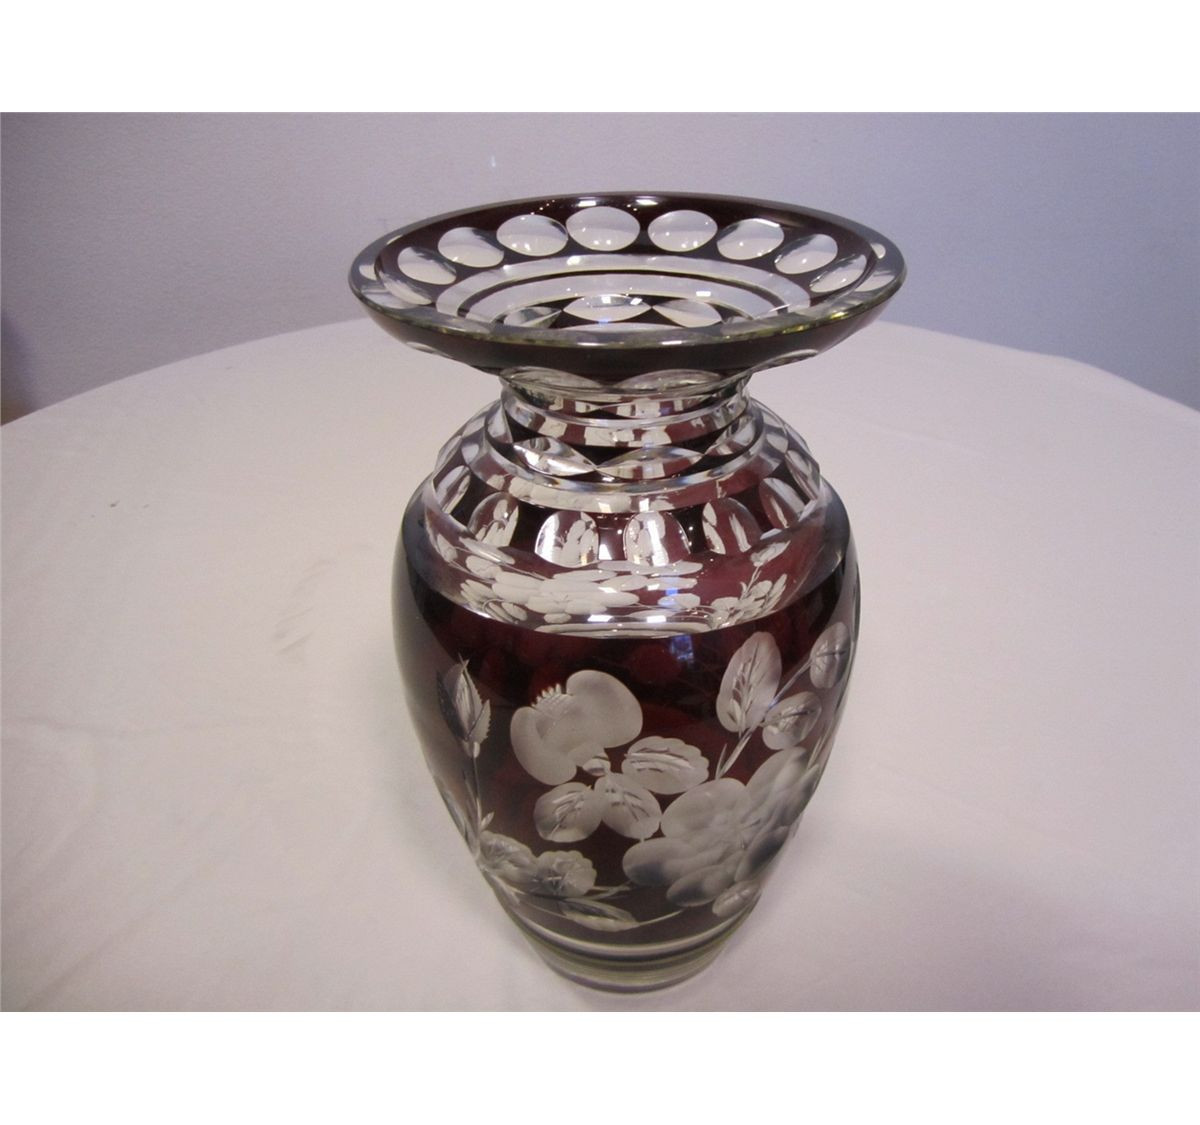 vintage clear glass flower vases of antique bohemian czech deep ruby red cut to clear crystal vase 11 1 throughout antique bohemian czech deep ruby red cut to clear crystal vase 11 1 2 tall